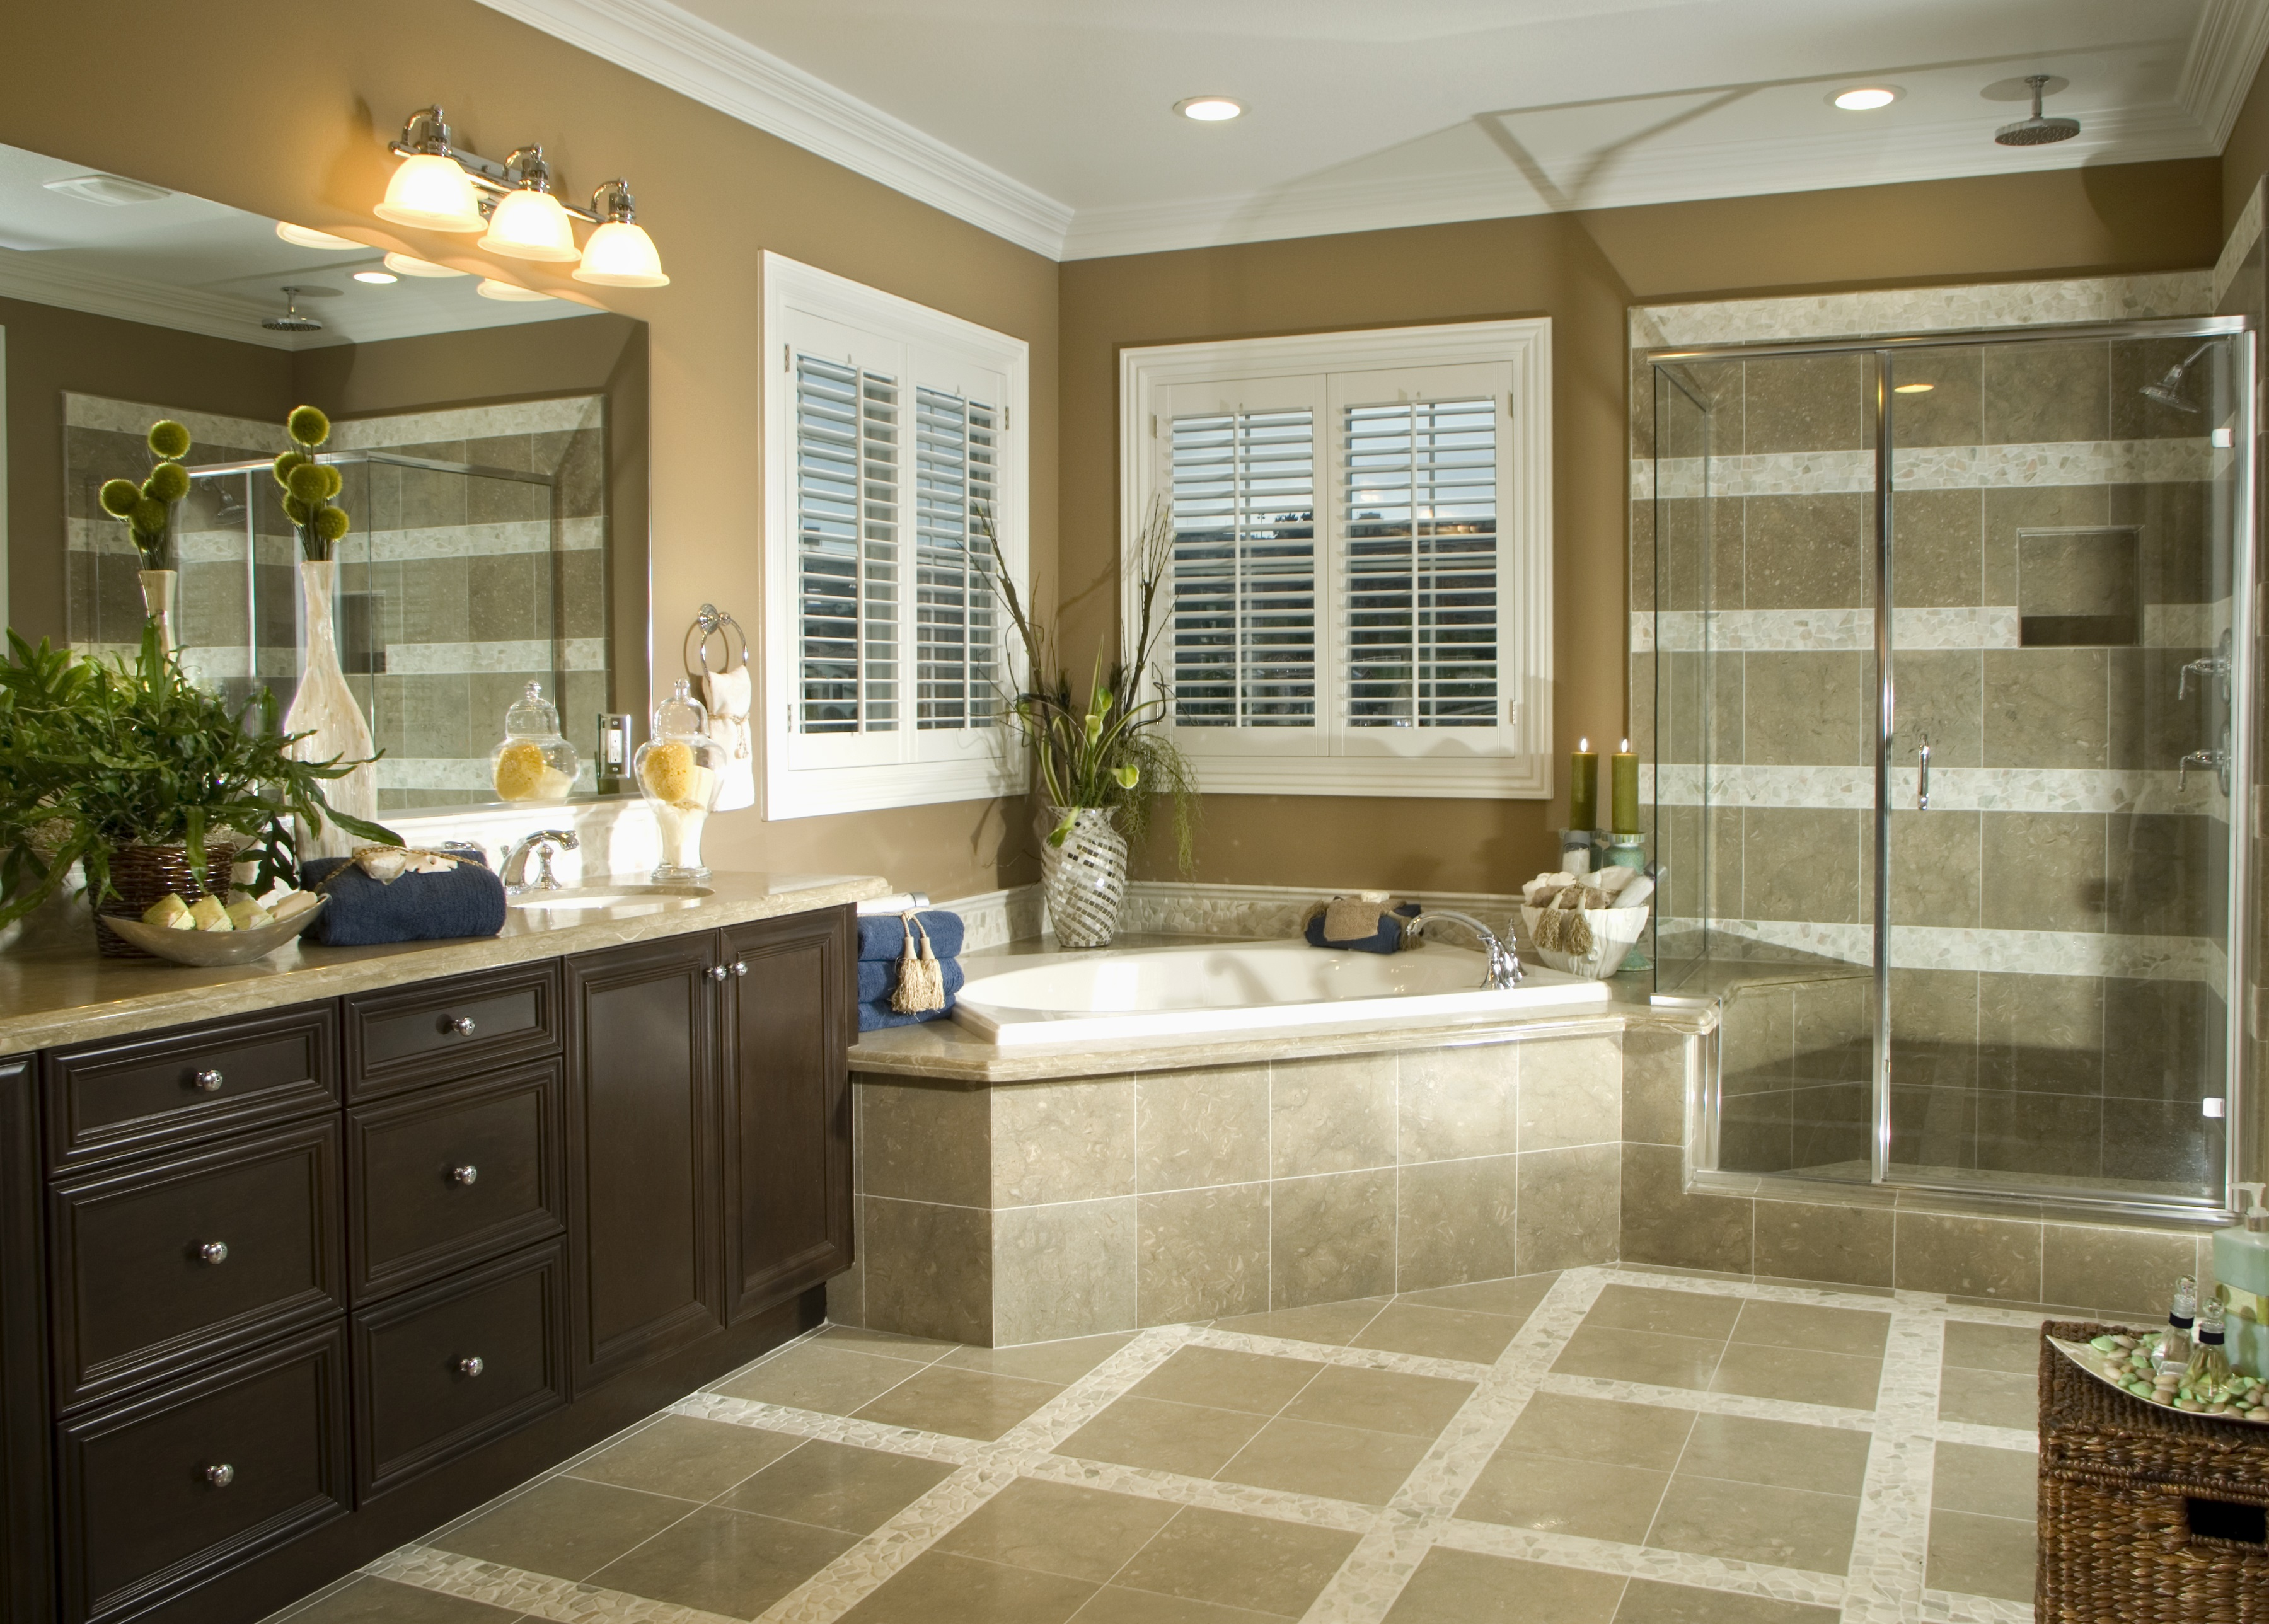 Bathroom Remodel Cost In Nj cost of remodeling a bathroom in nj. nj bathroom remodeling cost